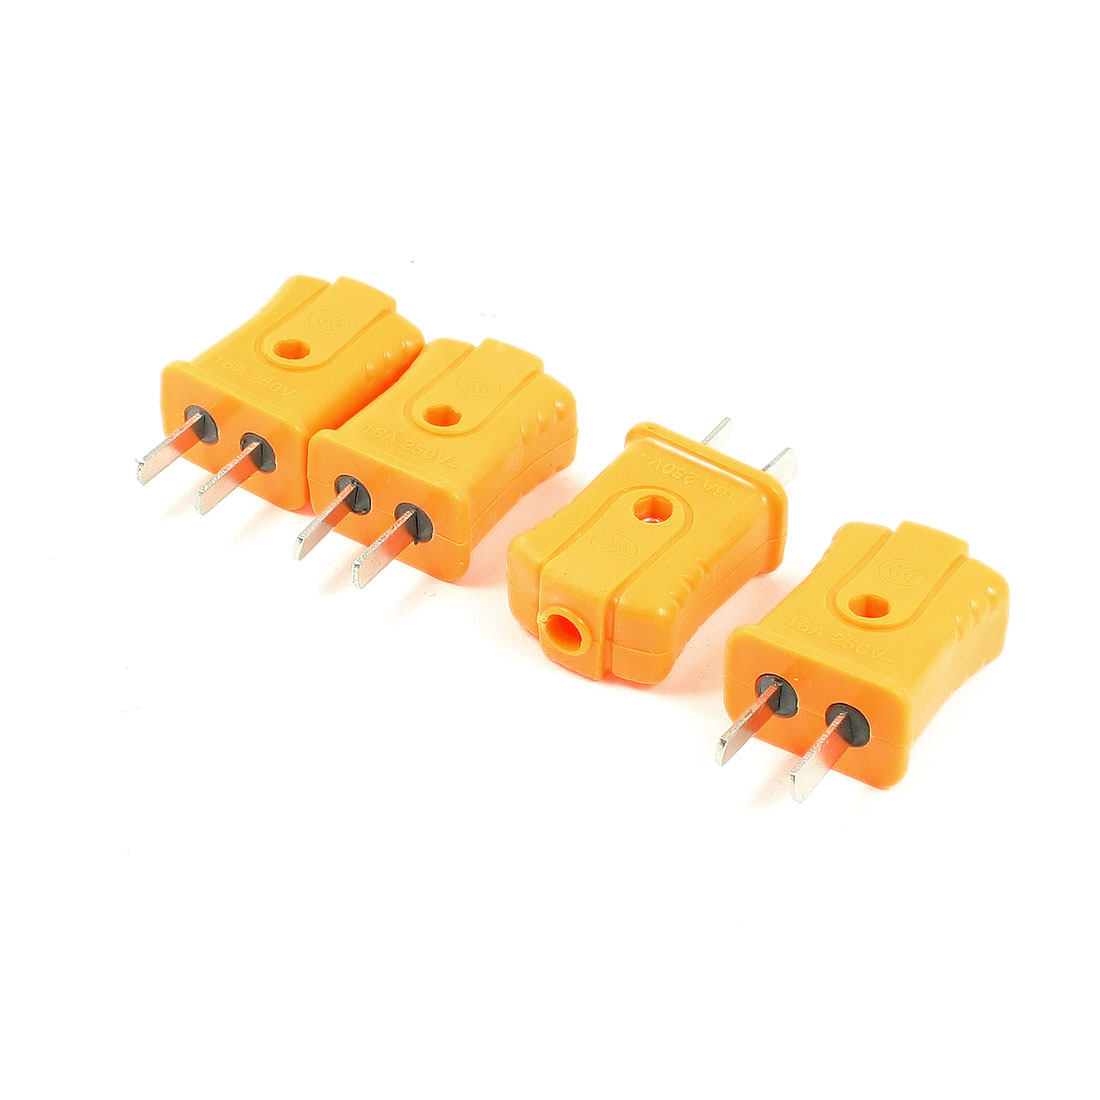 AC 250V 16A 7.2mm Dia Cord Hole 2 Flat Pin AU US Plug Power Adapter 4 Pcs